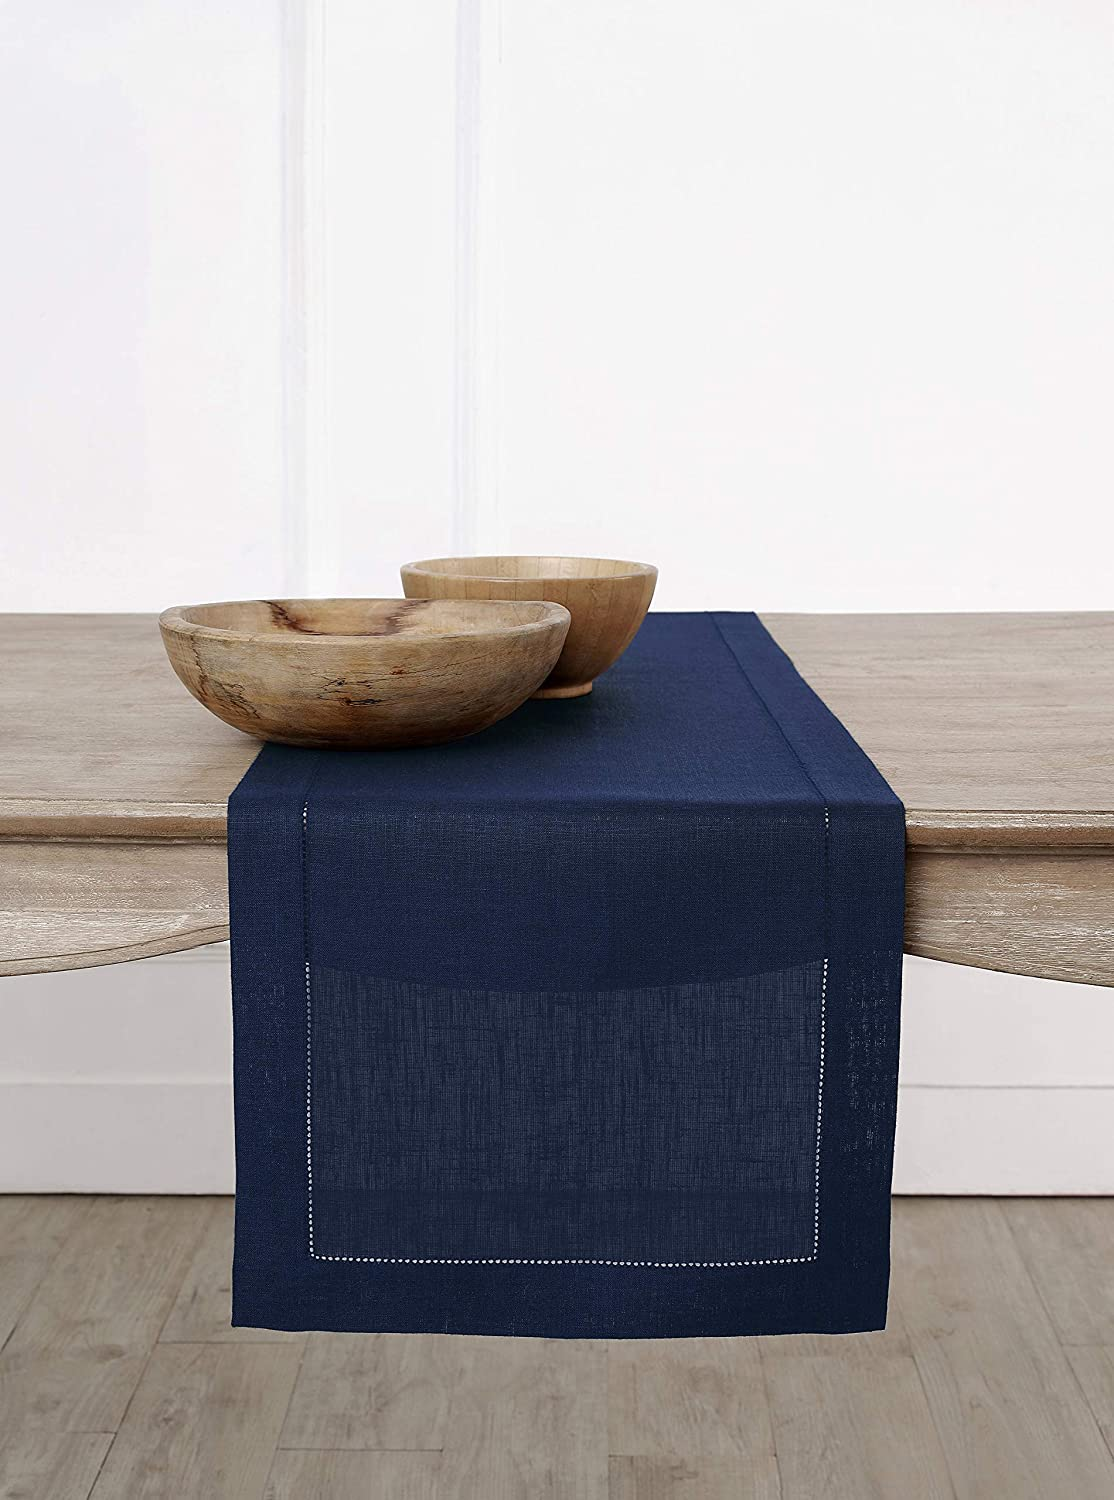 Solino Home 100% Pure Linen Table Runner – 16 x 108 Inch, Hemstitched Runner – Navy, European Flax Natural Fabric